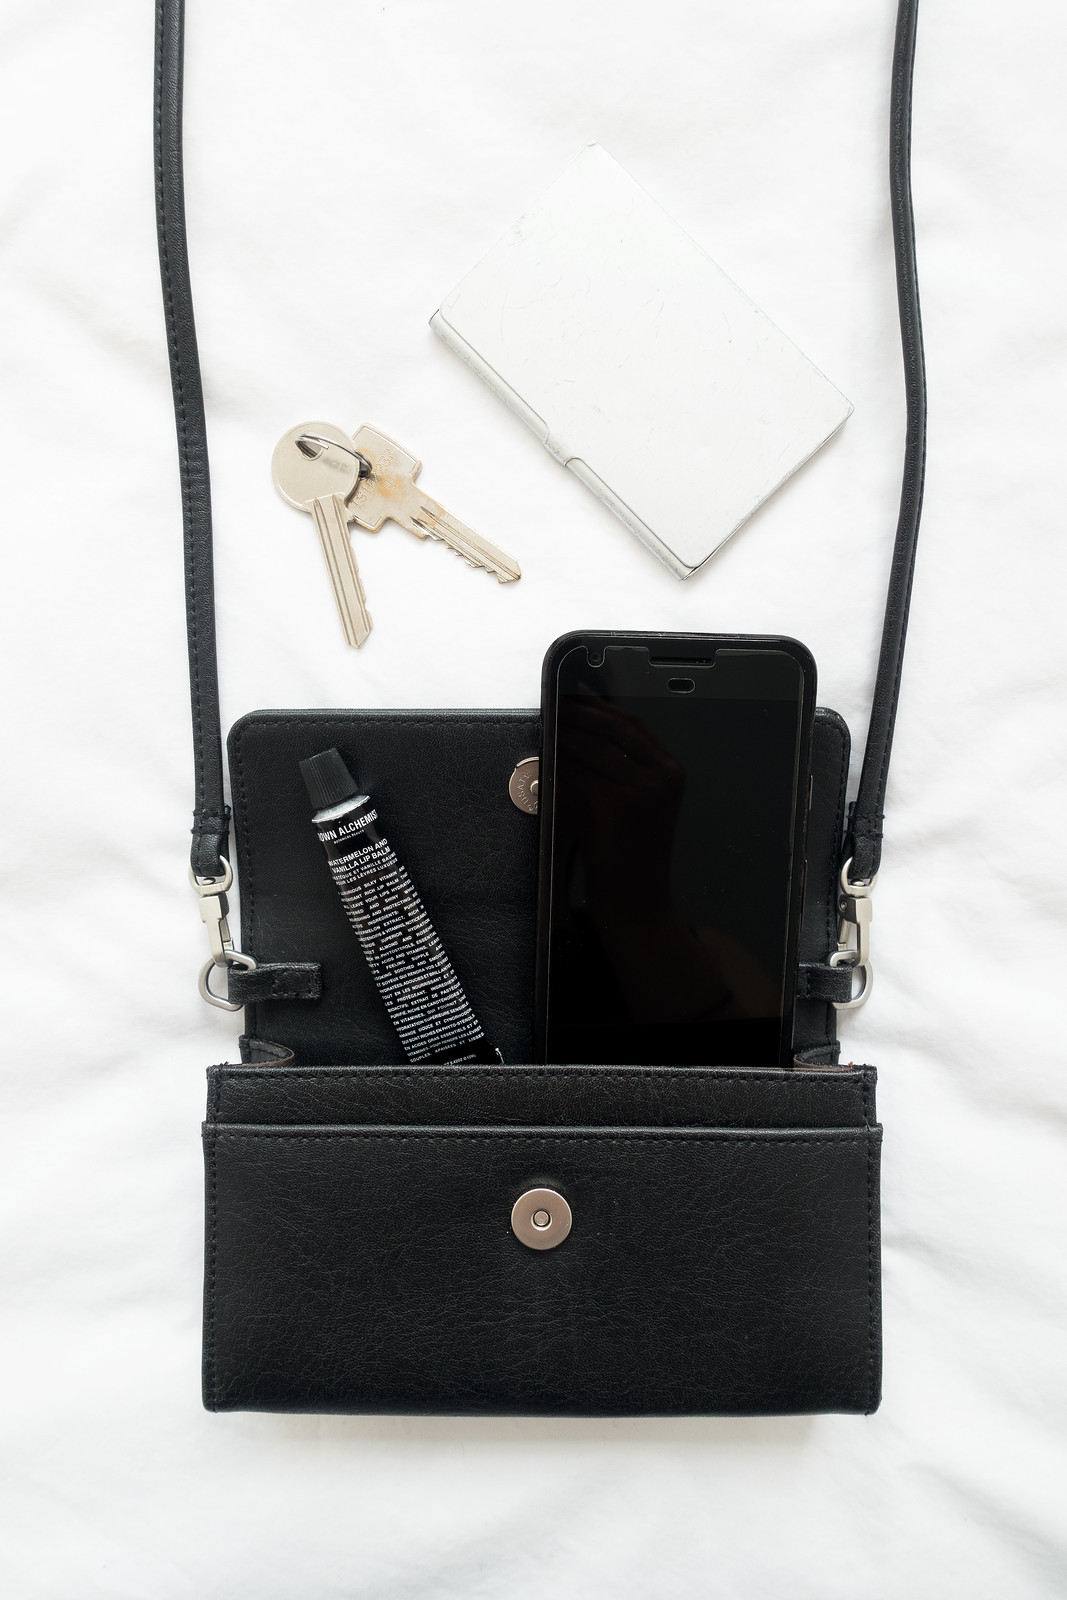 A Minimalist's Bag With Matt & Nat